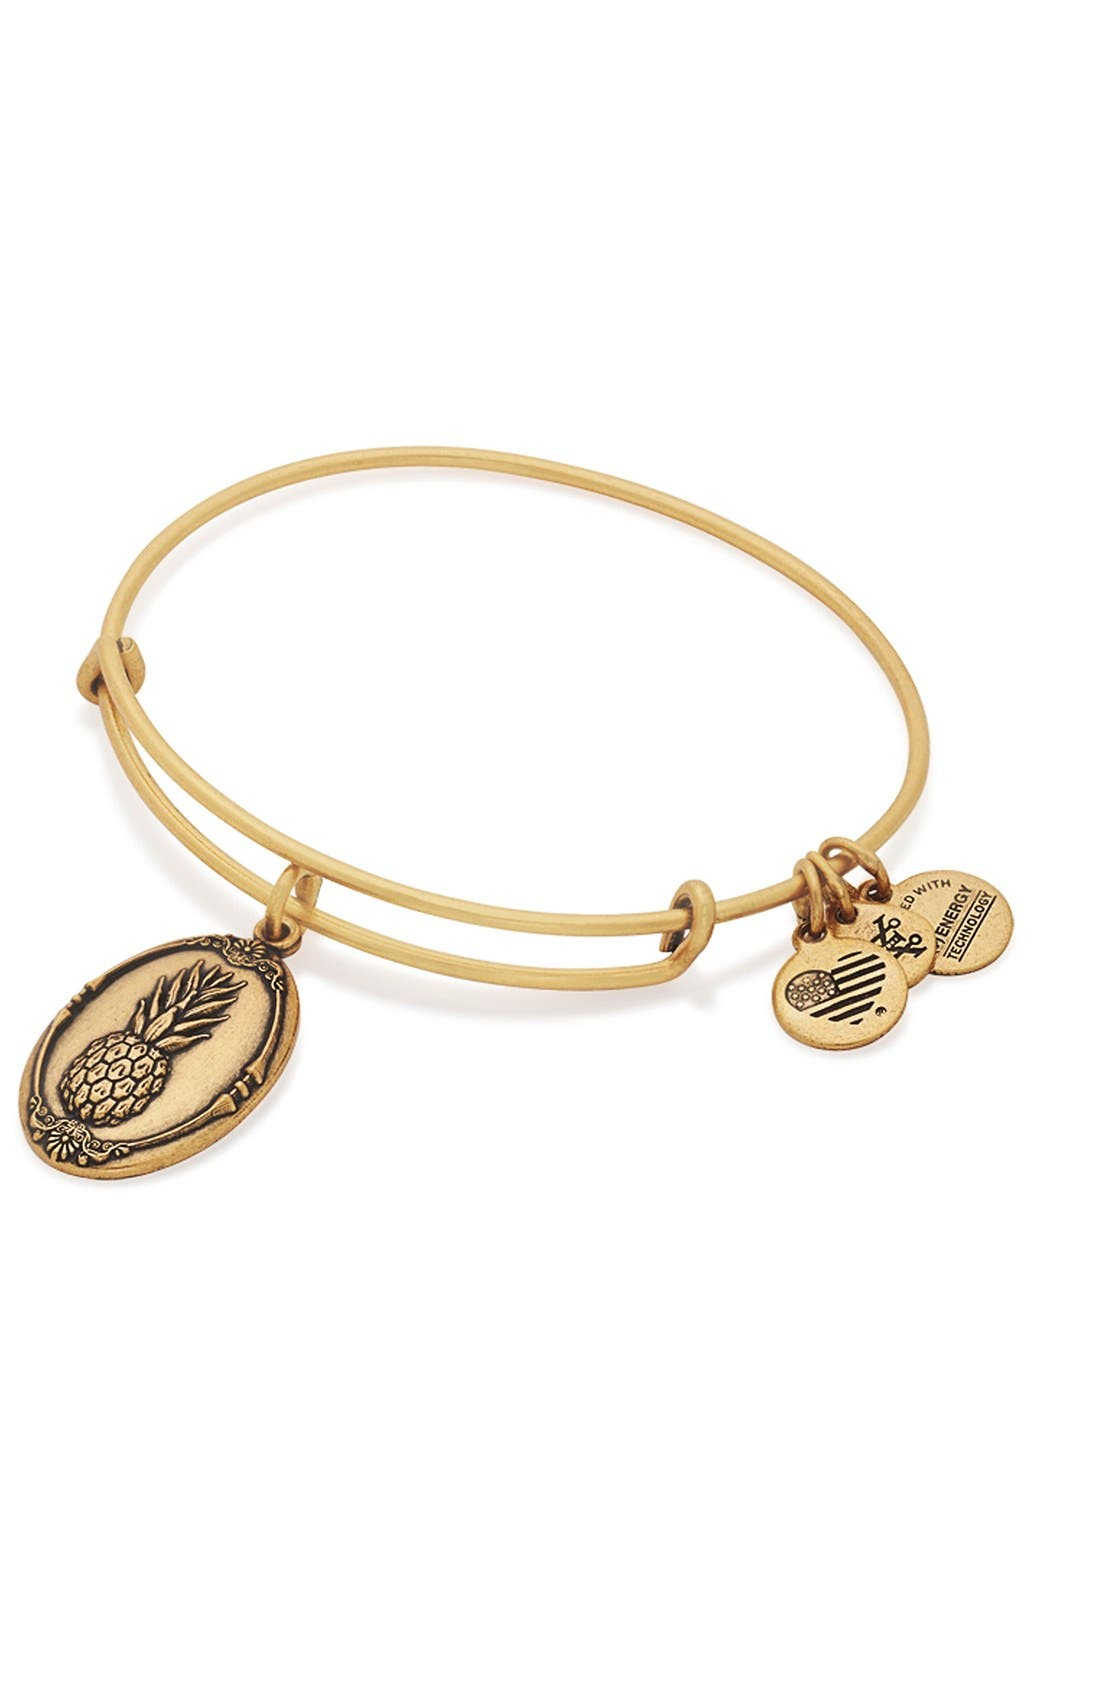 Alternate Image 3  - Alex and Ani 'Pineapple' Adjustable Wire Bangle